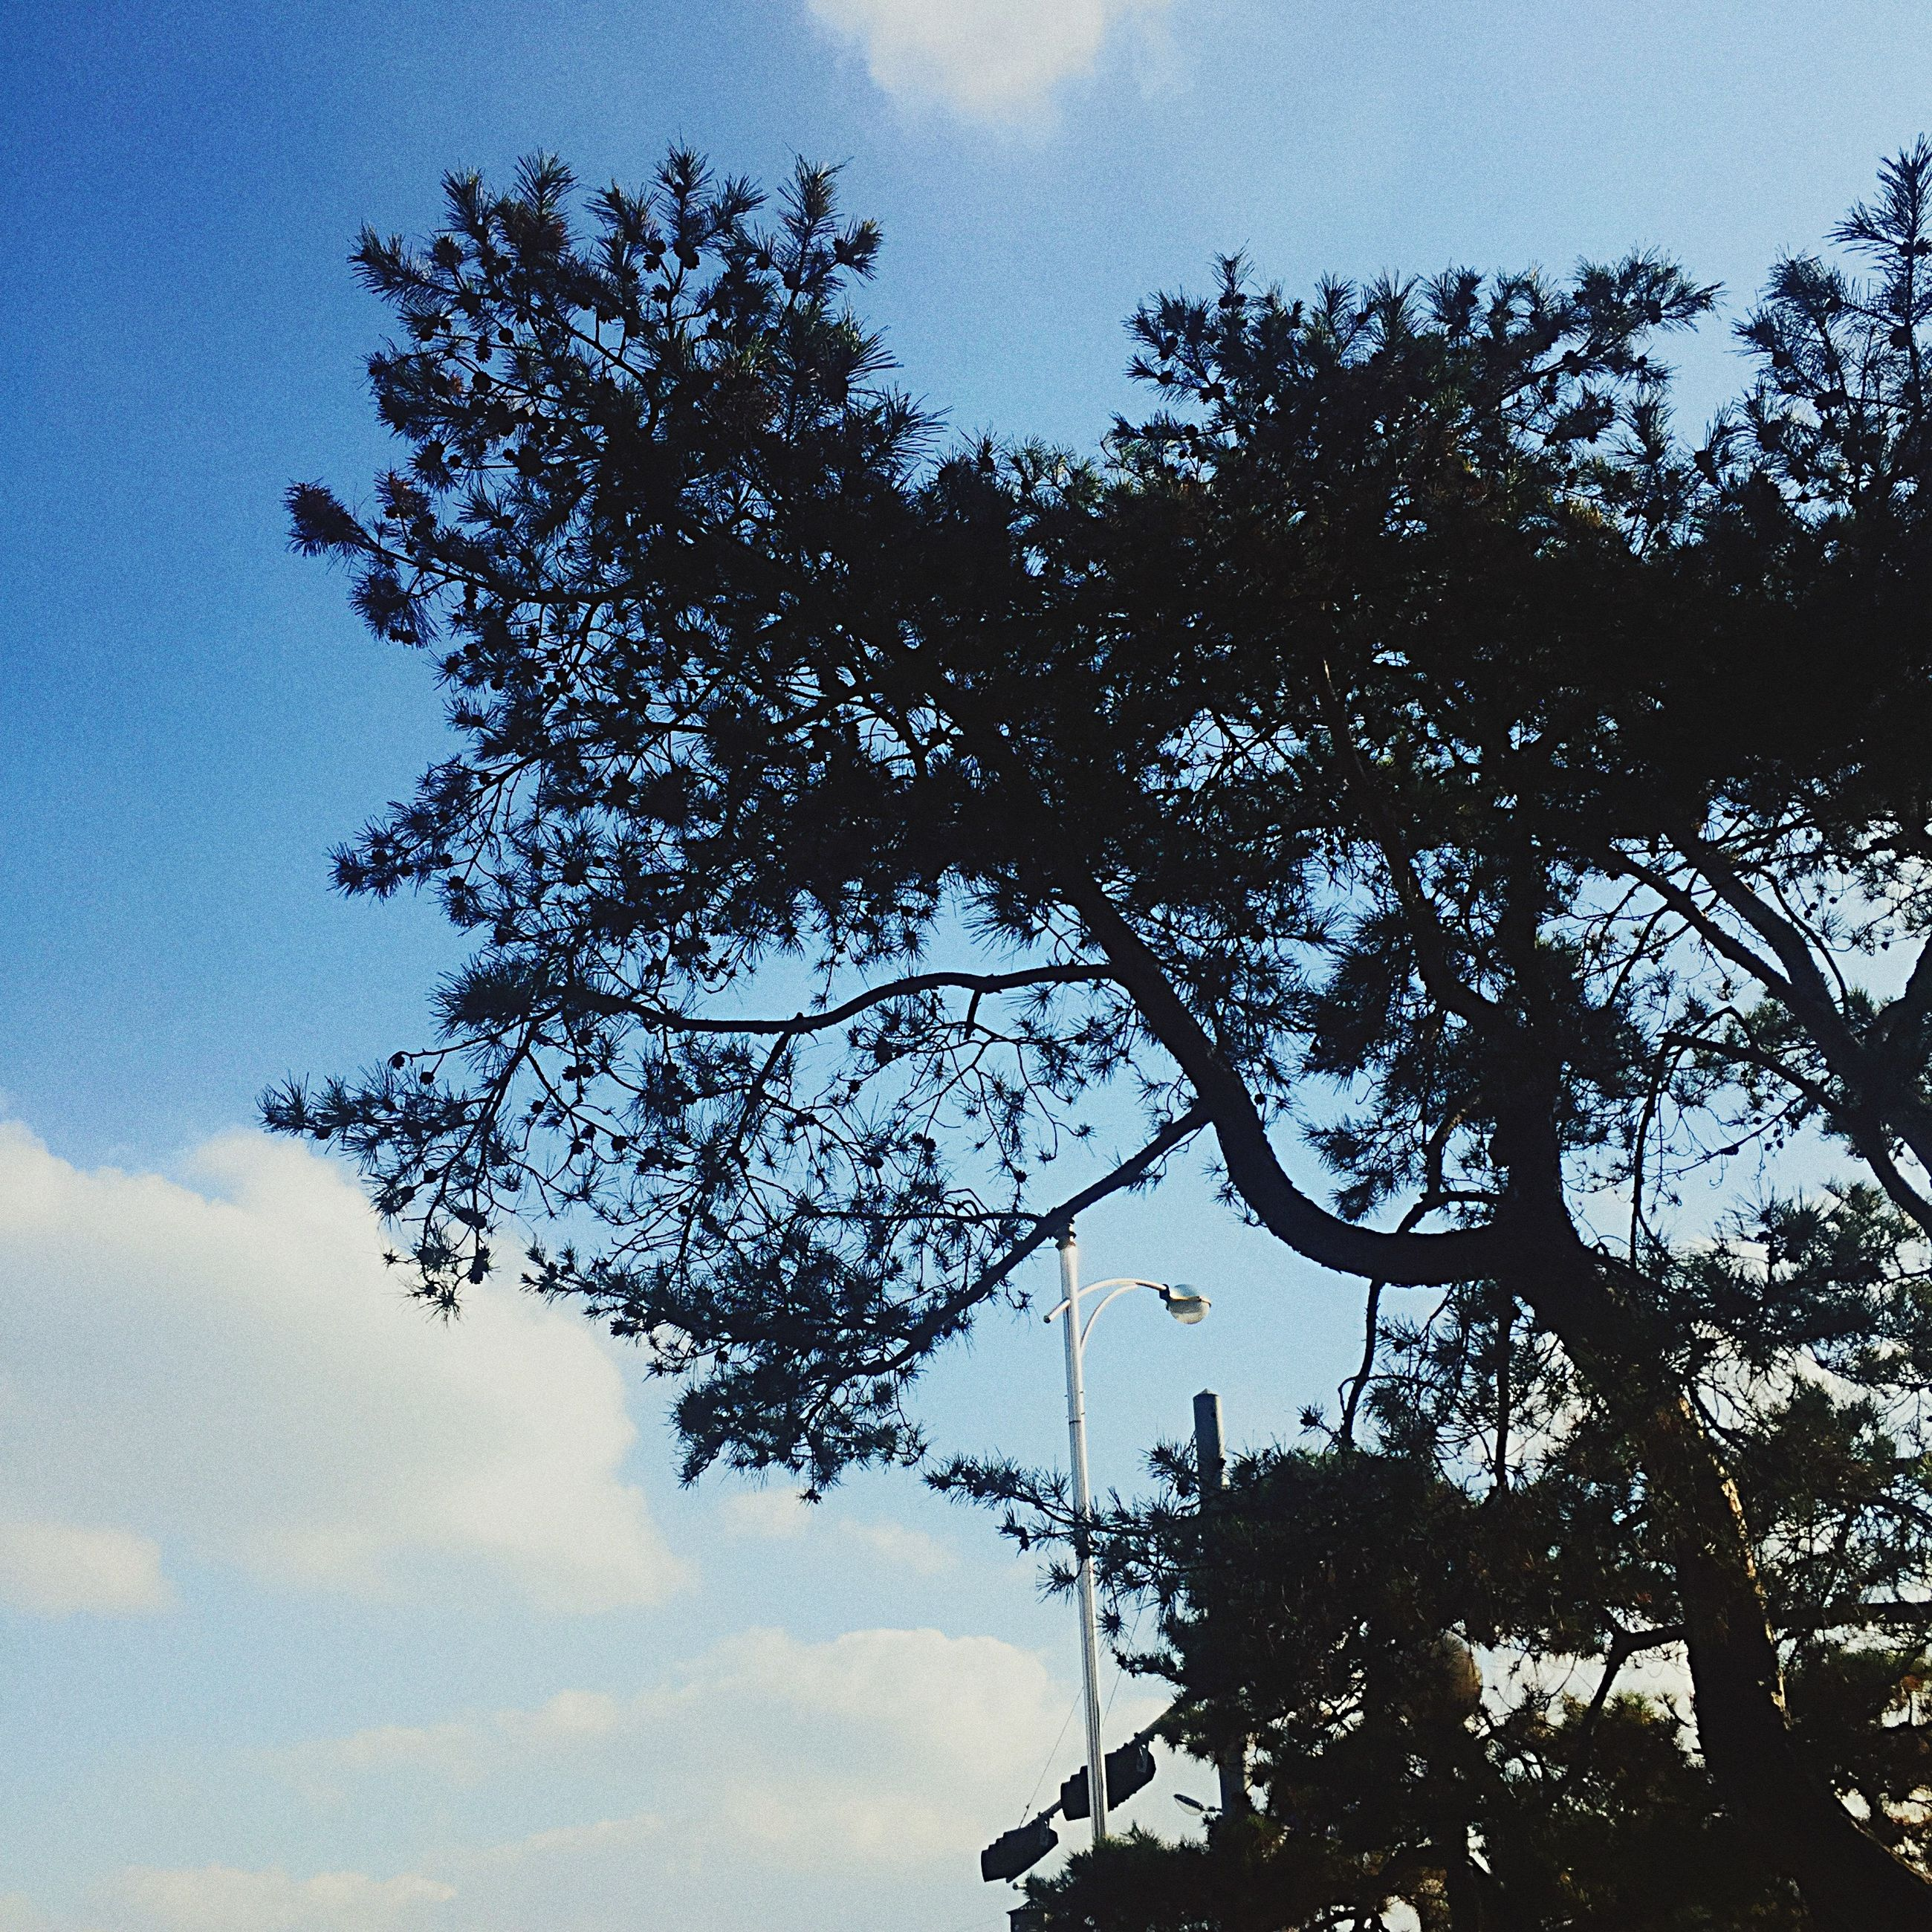 tree, low angle view, sky, branch, tranquility, growth, nature, beauty in nature, silhouette, scenics, tranquil scene, blue, outdoors, sunlight, no people, day, cloud - sky, clear sky, tree trunk, cloud